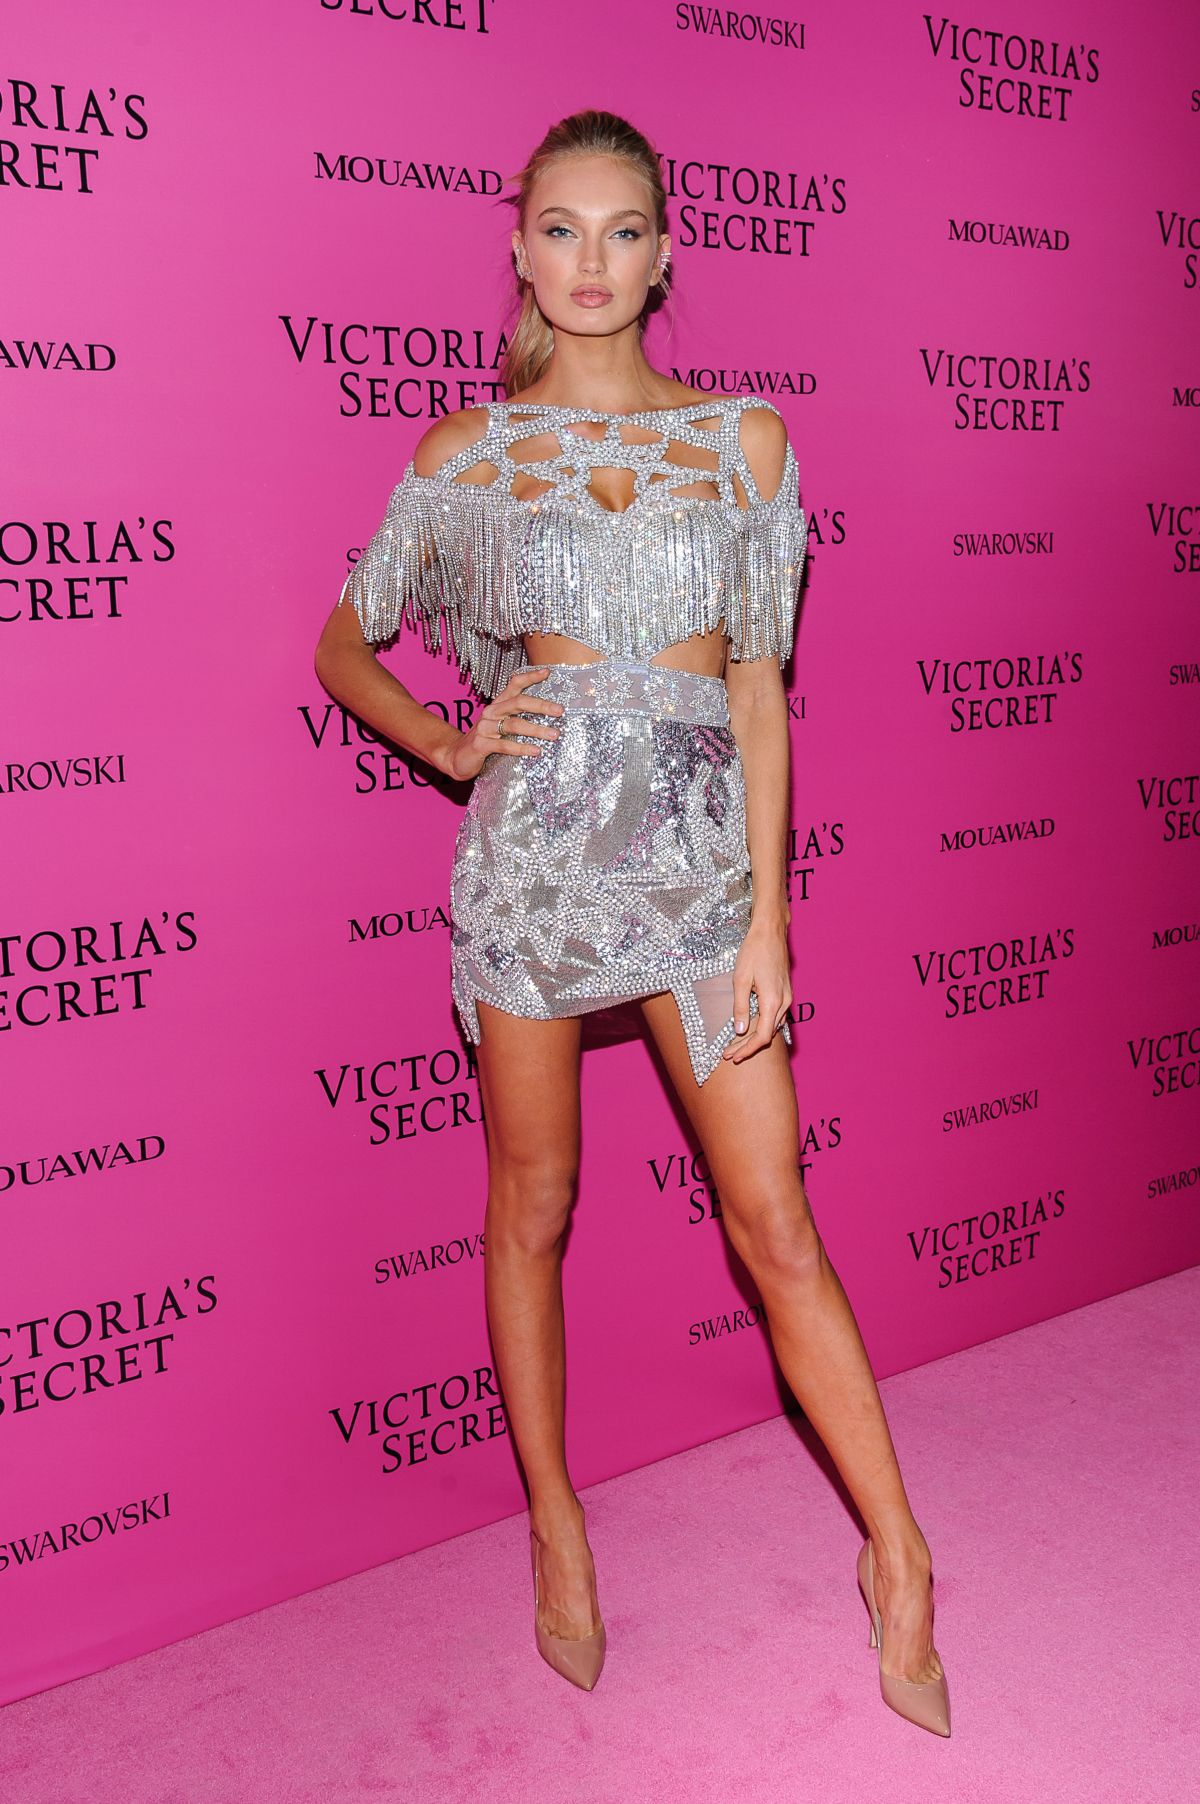 Romee Strijd Romee-strijd-at-2017-vs-fashion-show-after-party-in-shanghai-11-20-2017-5